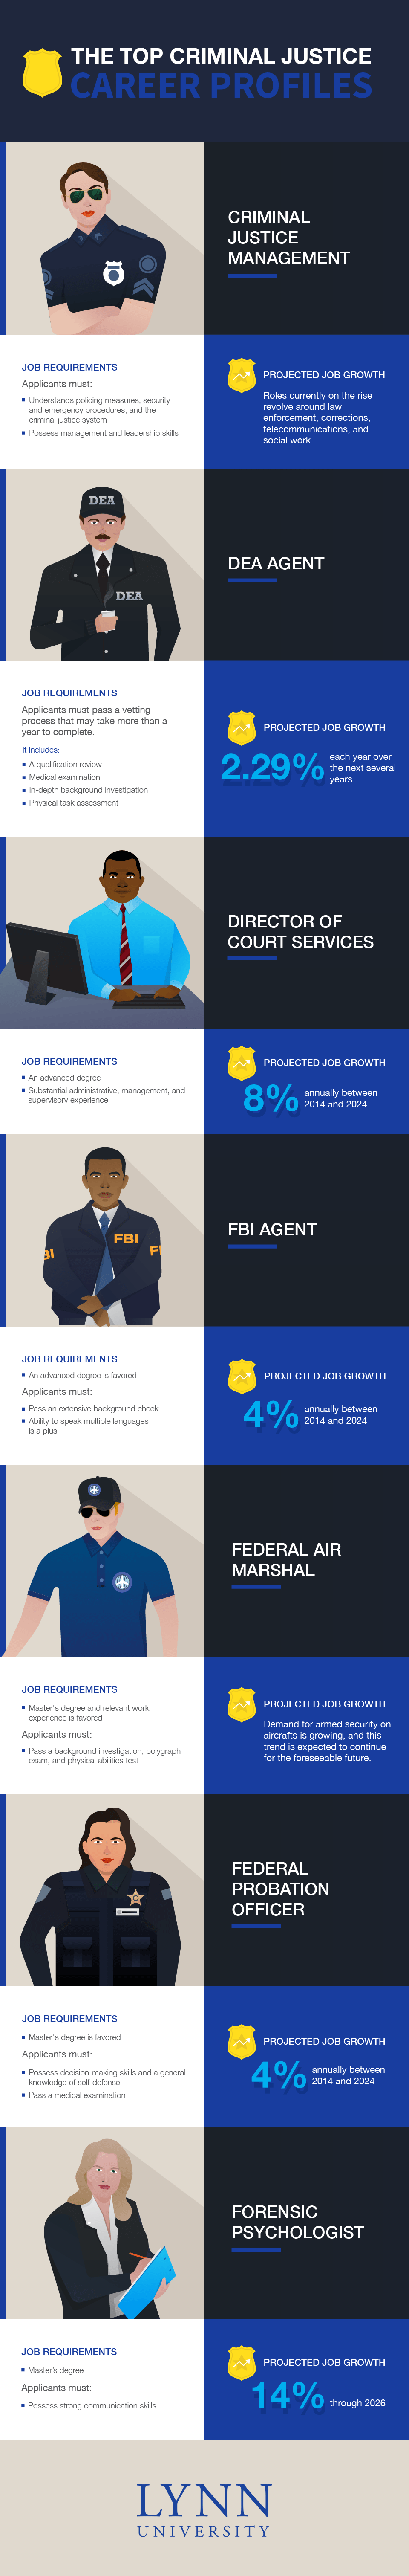 Top 7 Criminal Justice Career Profiles | CareerMetis.com